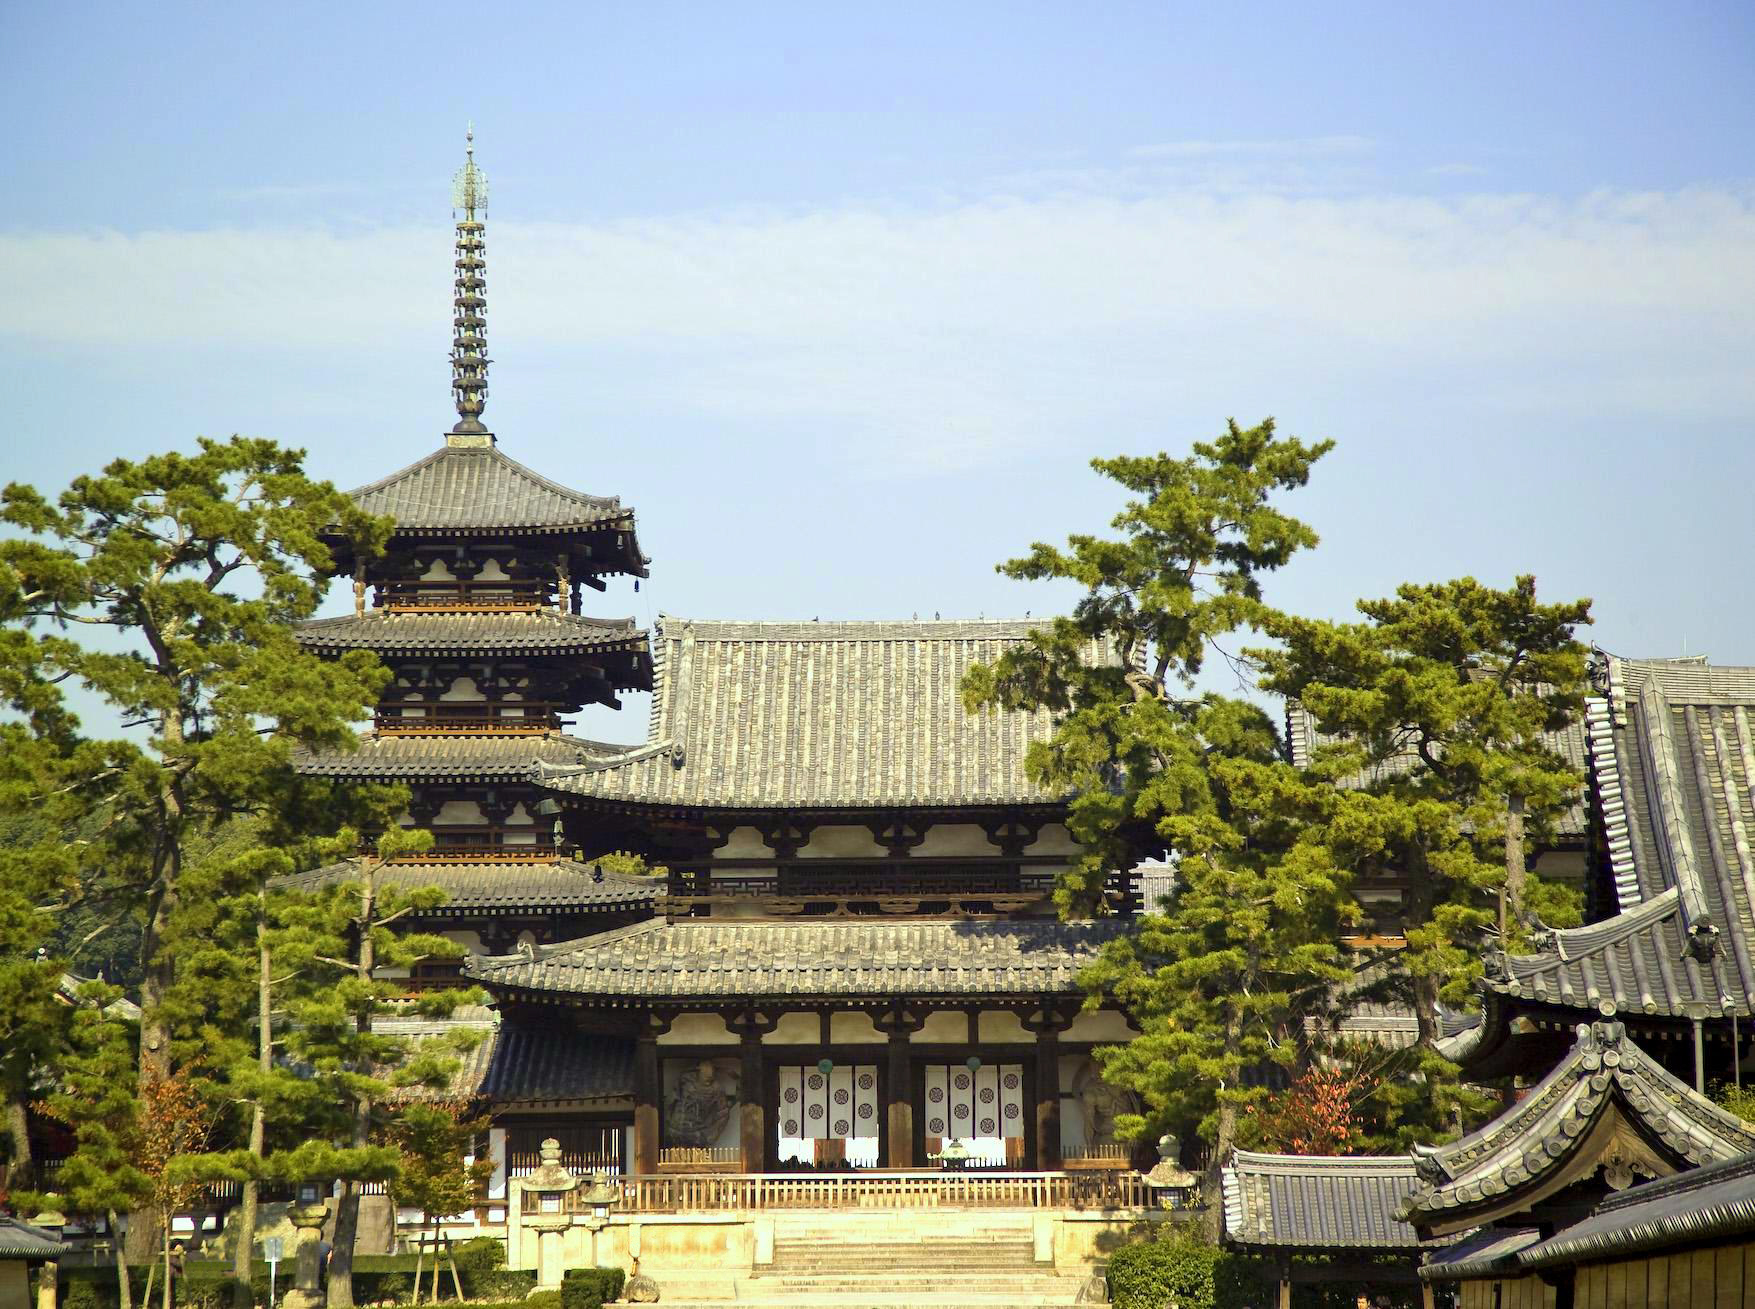 Horyuji Temple Japan  Buddhist Temple UNESCO World Heritage SIte -Nara Prefecture, Japan